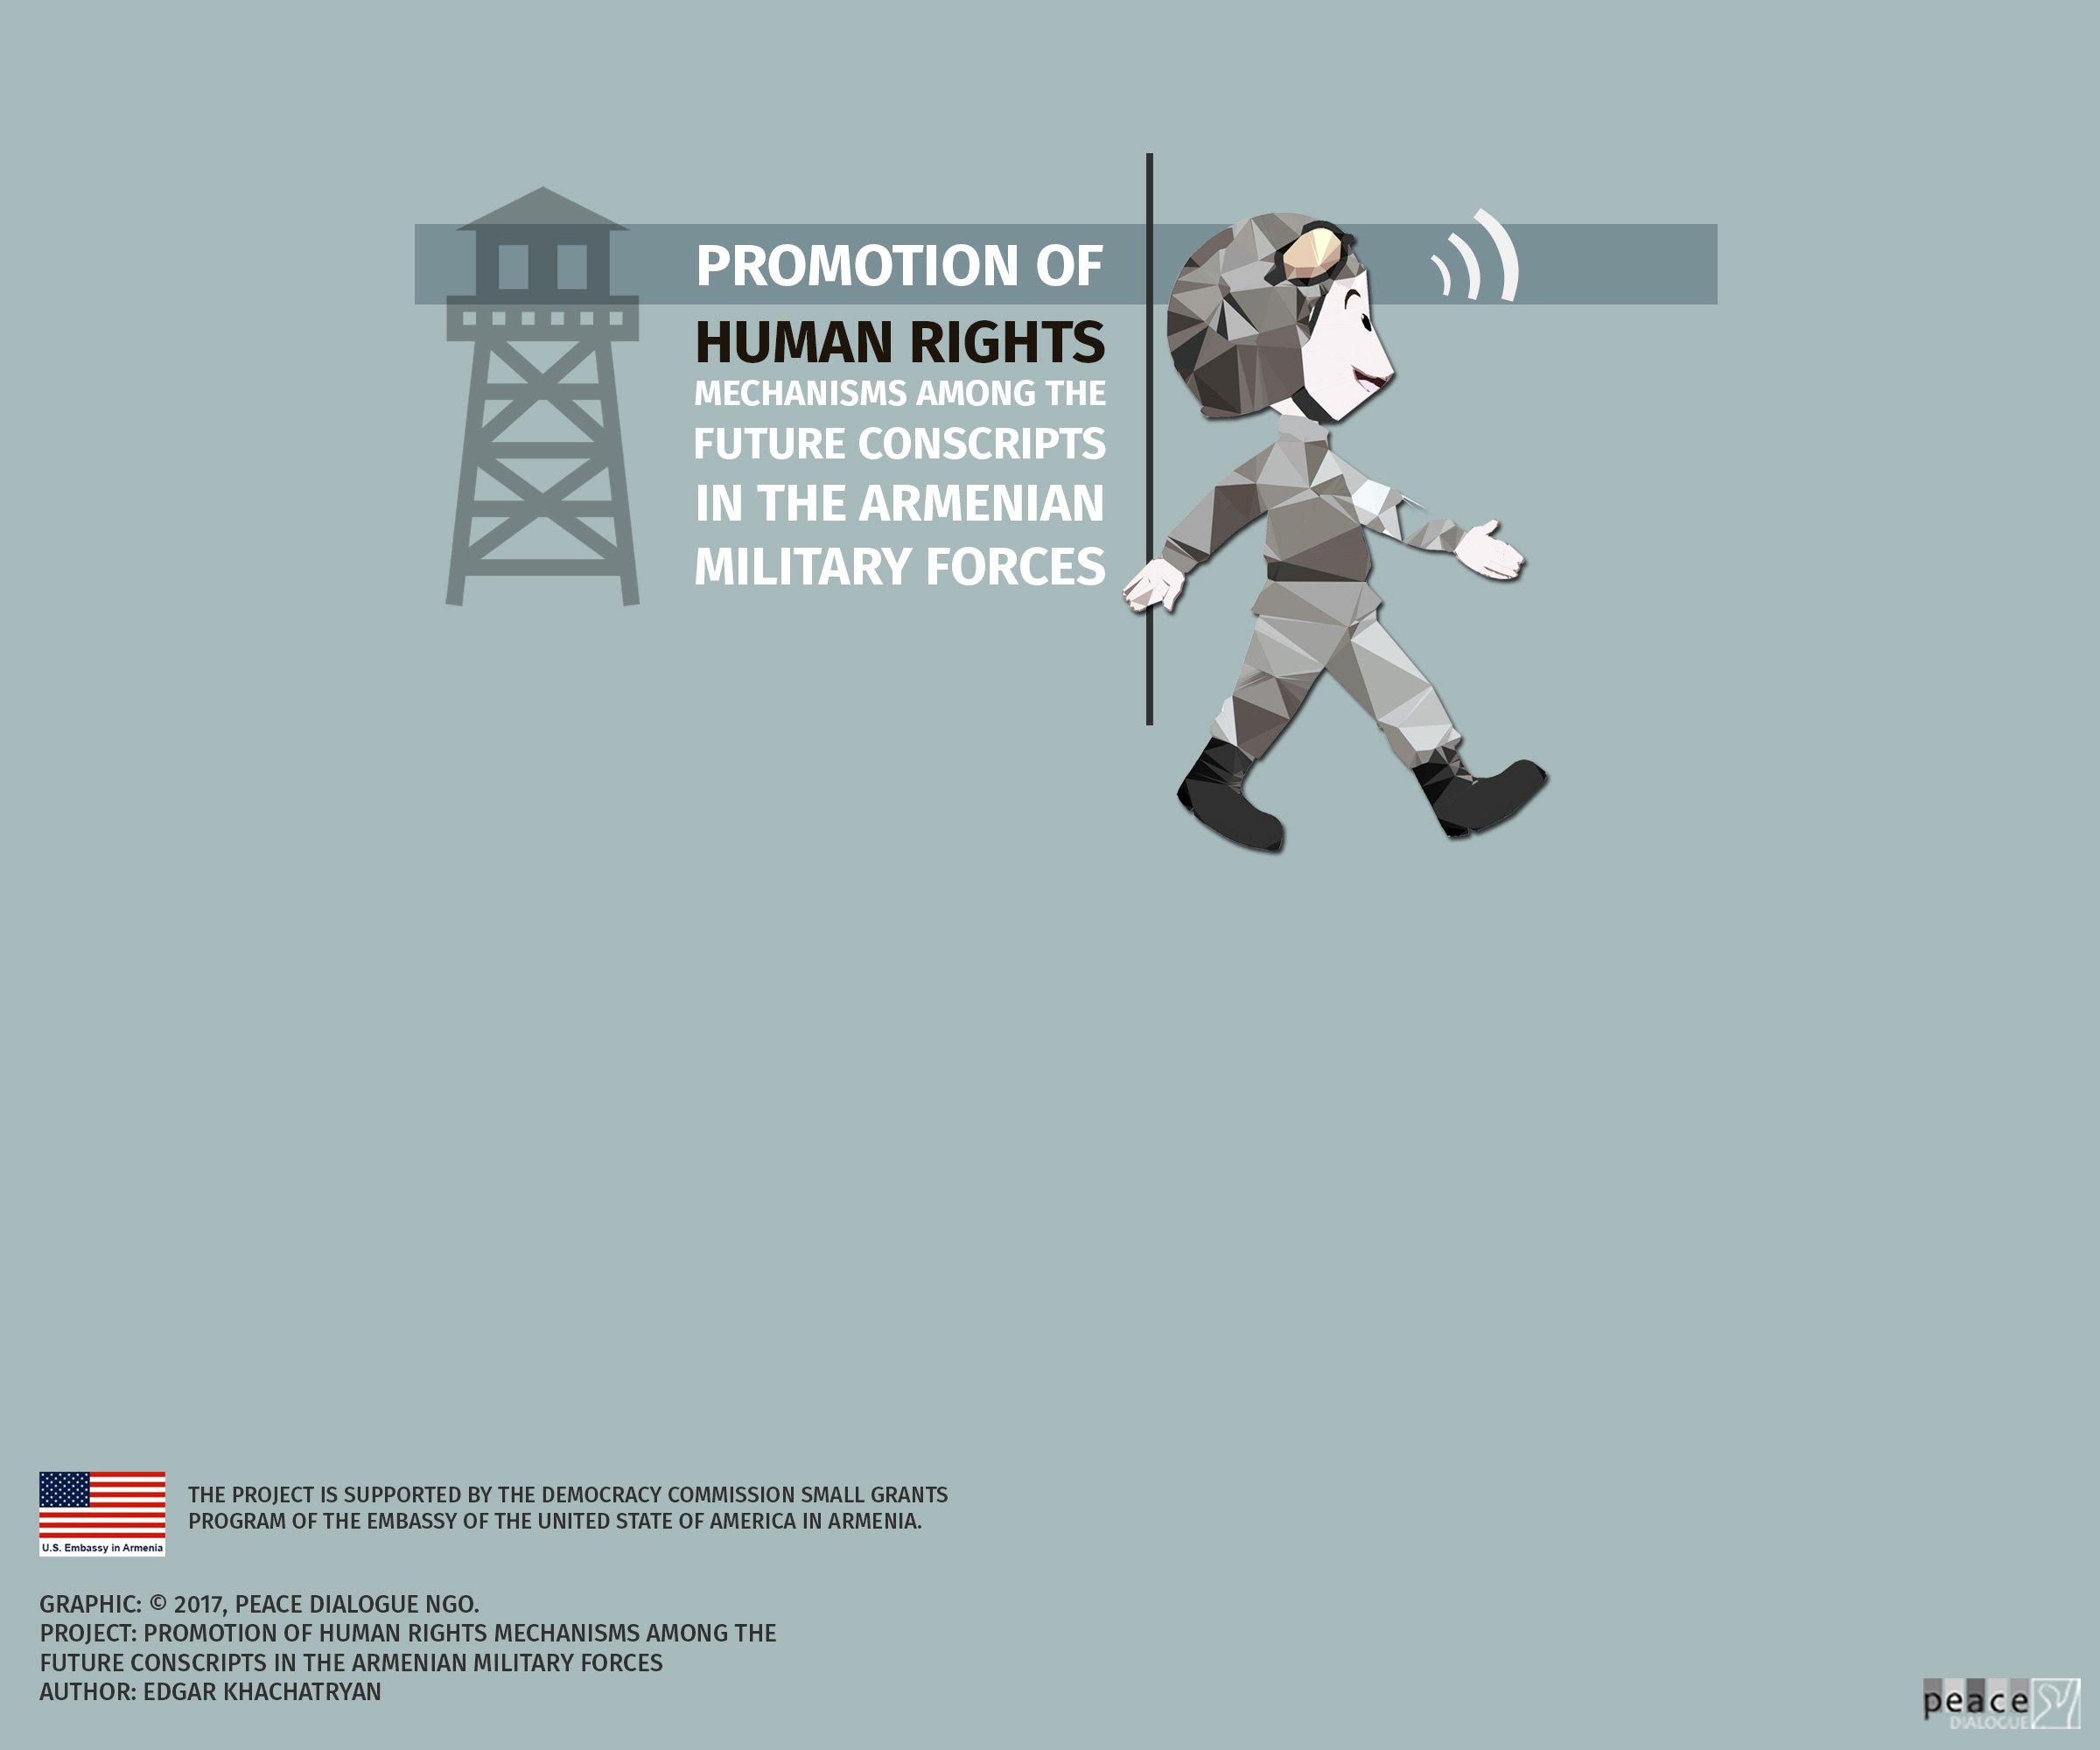 Promotion of Human Rights Mechanisms among the Future Conscripts in the Armenian Military Forces